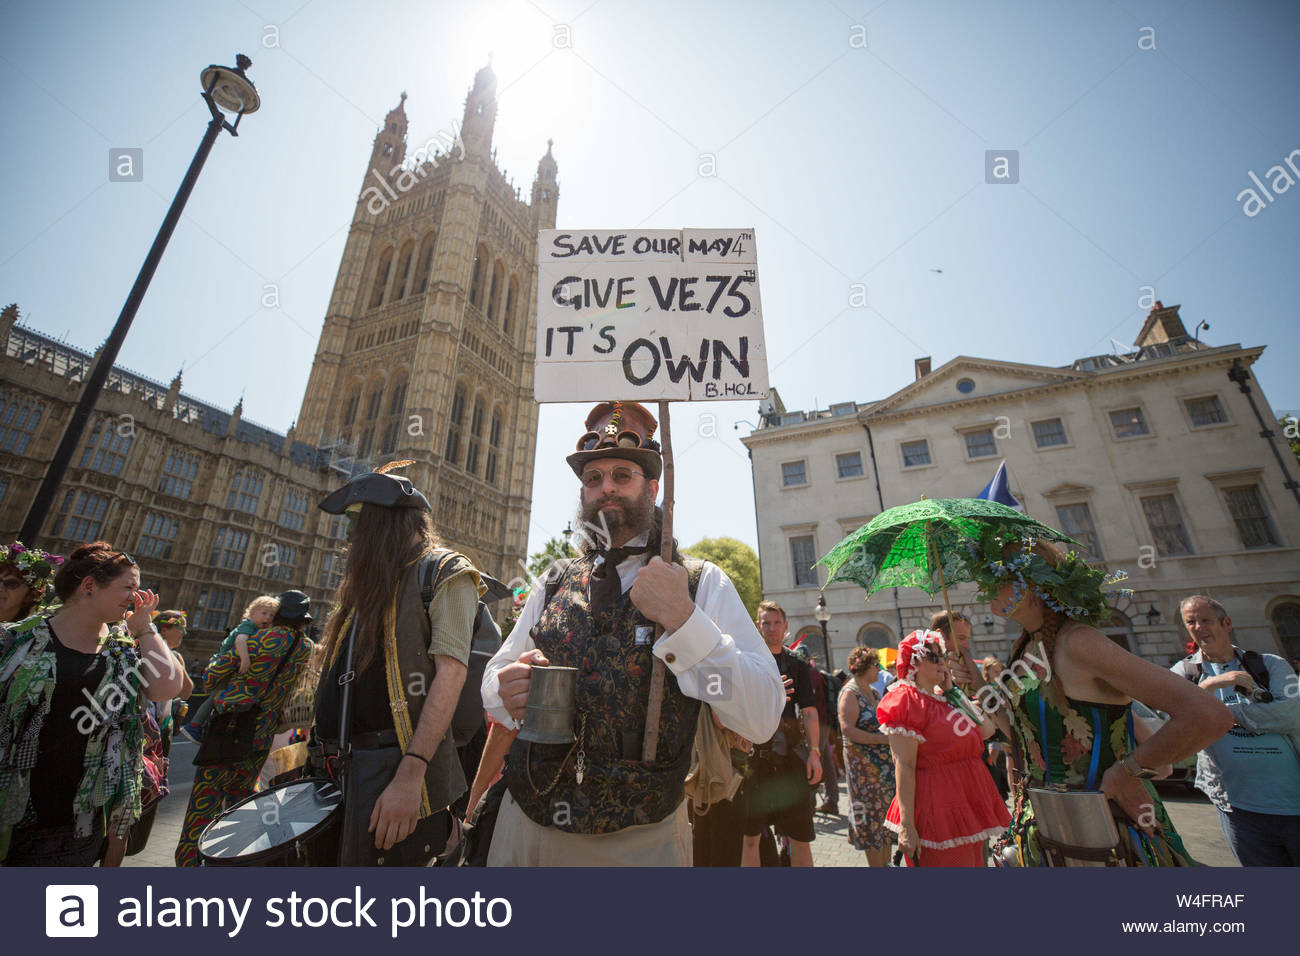 London, UK. 23rd July 2019. Morris dancers protest outside Parliament in Westminster over the Government's decision to move next year's May Day bank holiday from its traditional Monday to the following Friday. The move switches the holiday to May 8th in order to celebrate the 75th anniversary of VE Day. Morris Dancers claim the switch will disrupt hundreds of festivals and events nationwide, harming local economies. Morris Dancers are requesting an additional Bank Holiday instead. Credit: Guy Corbishley/Alamy Live News Stock Photo